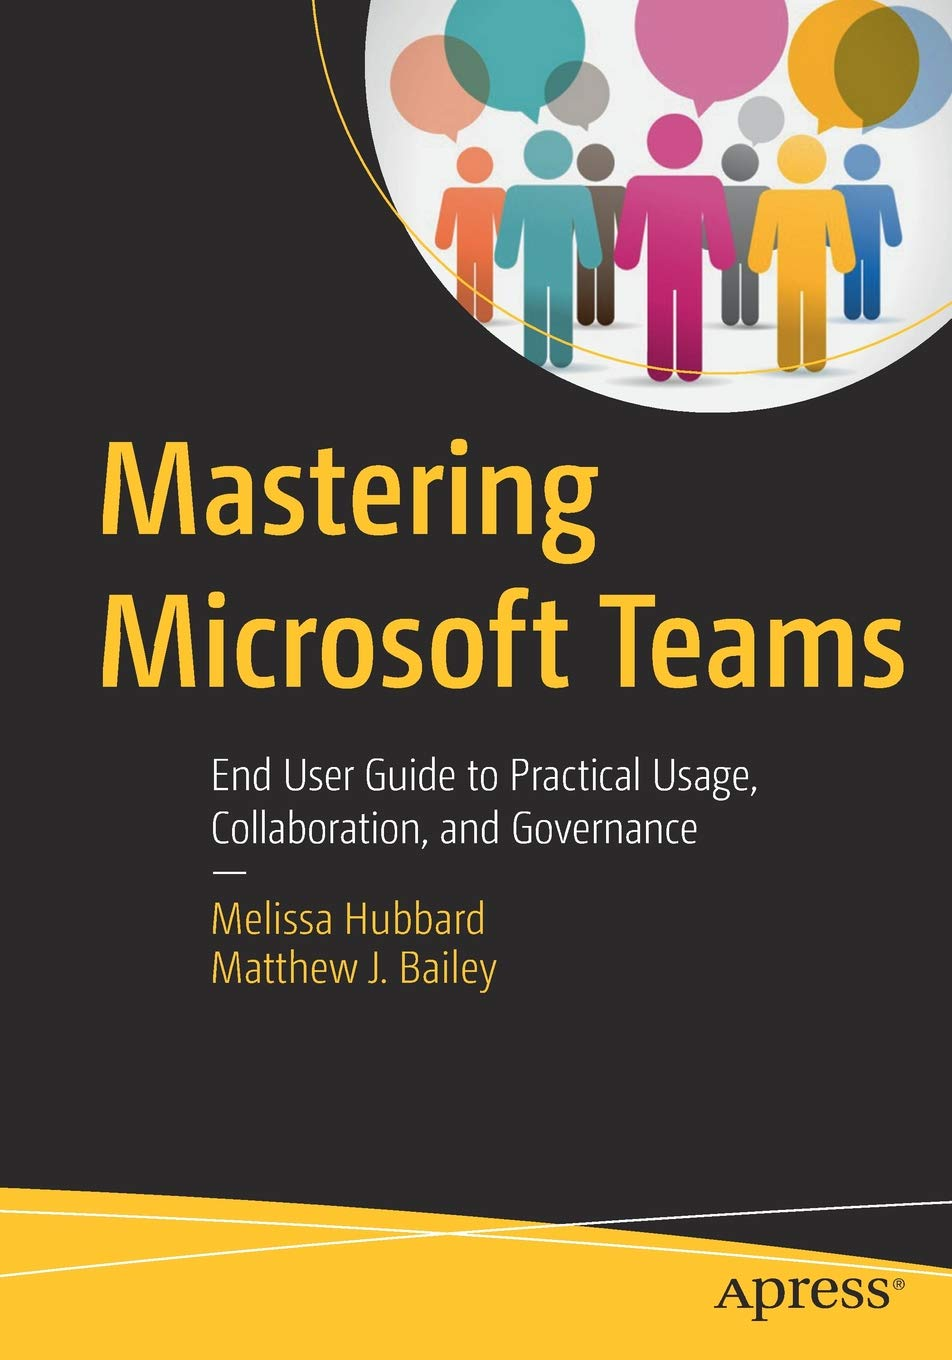 Mastering-Microsoft-Teams-End-User-Guide-to-Practical-Usage-Collaboration-and-Governance